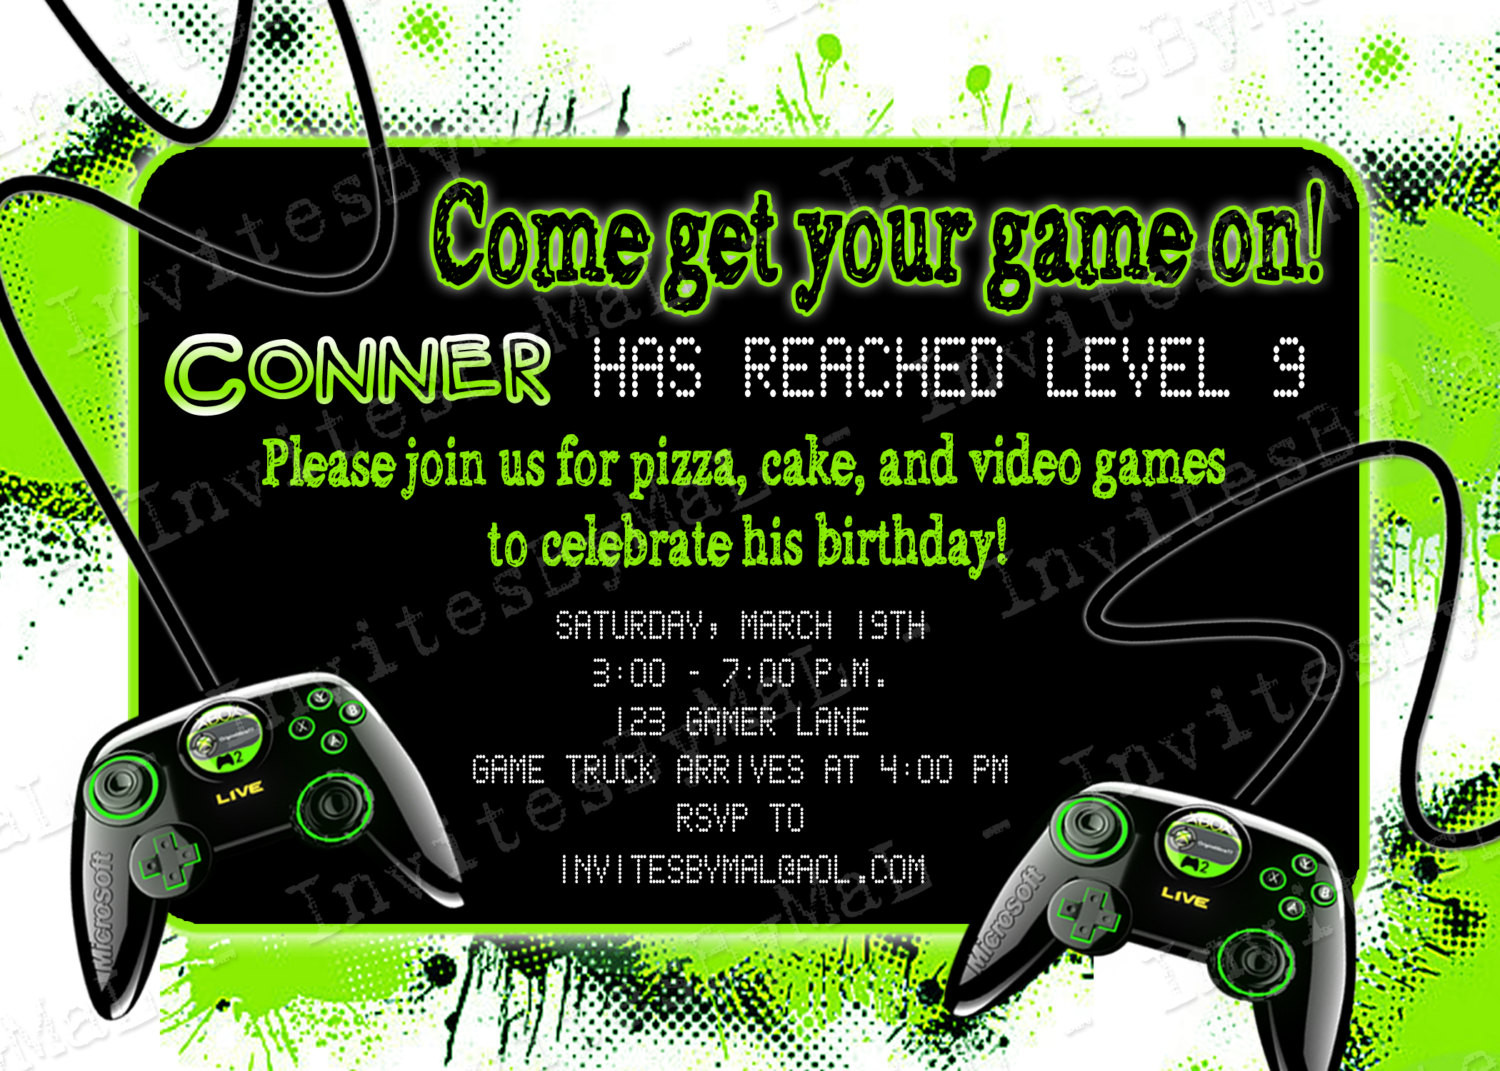 Best ideas about Video Game Birthday Invitations . Save or Pin Video Game Party Birthday Party Invitation with or by Now.